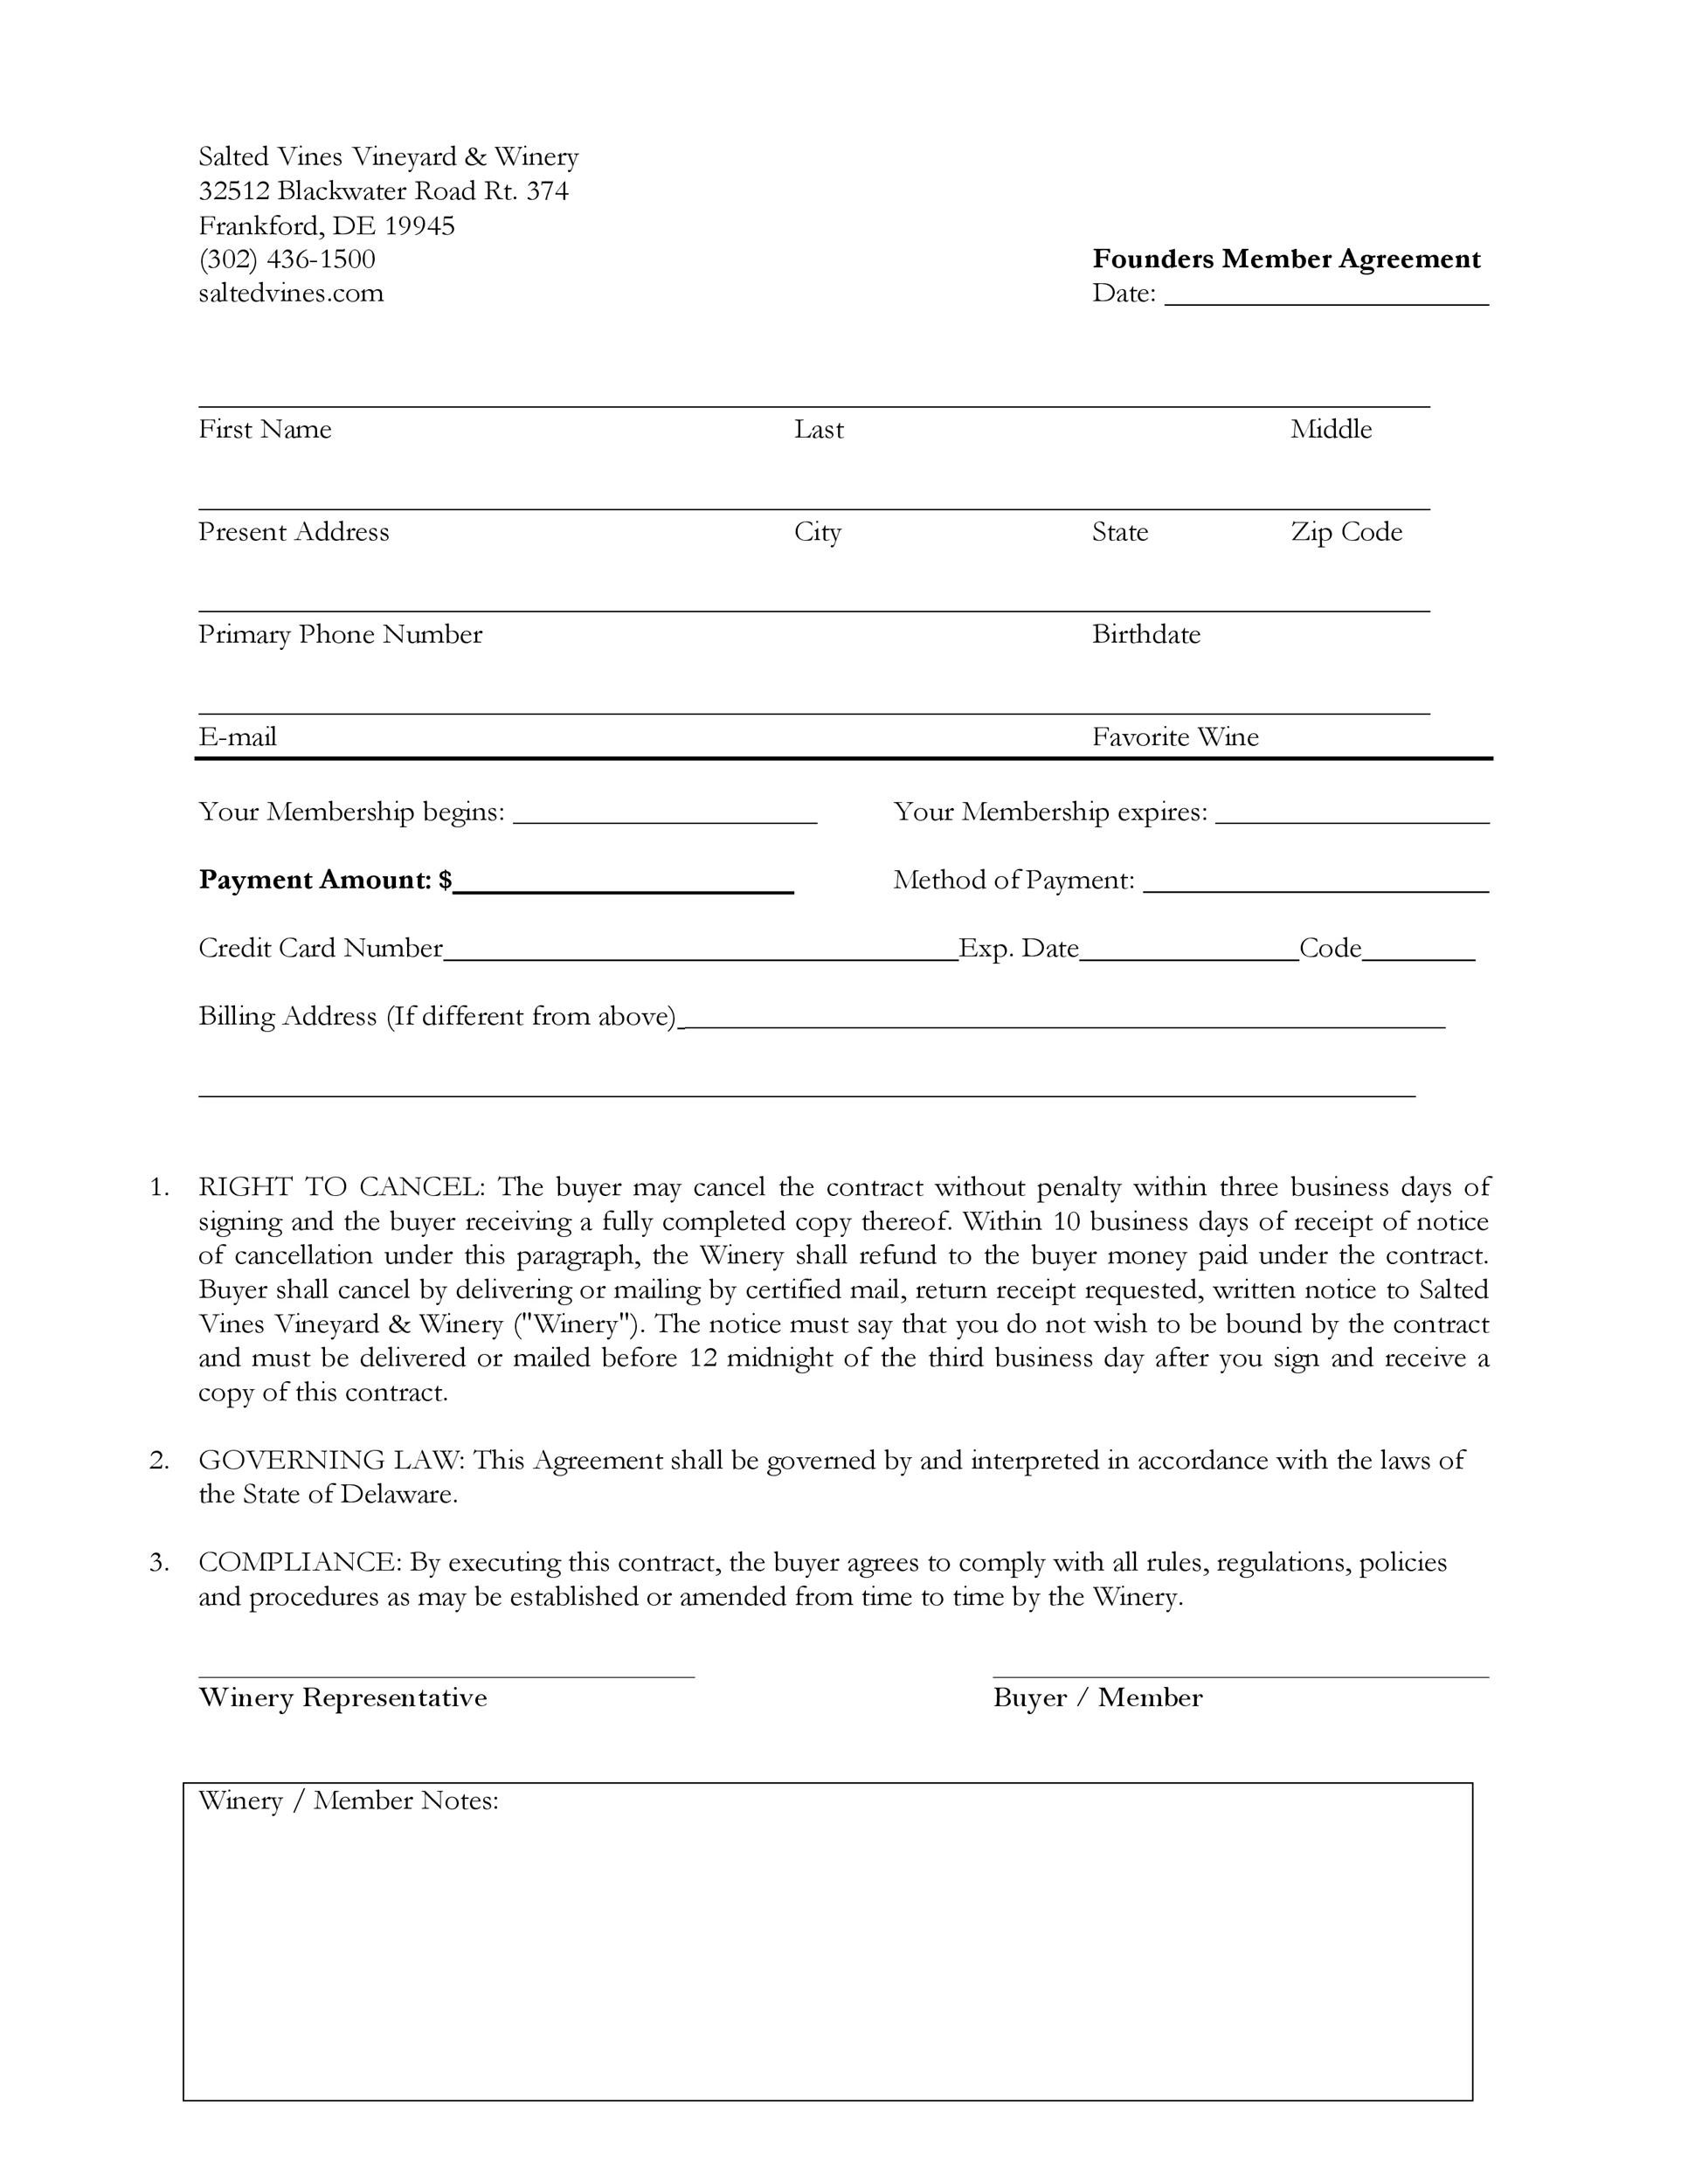 Free founders agreement 14